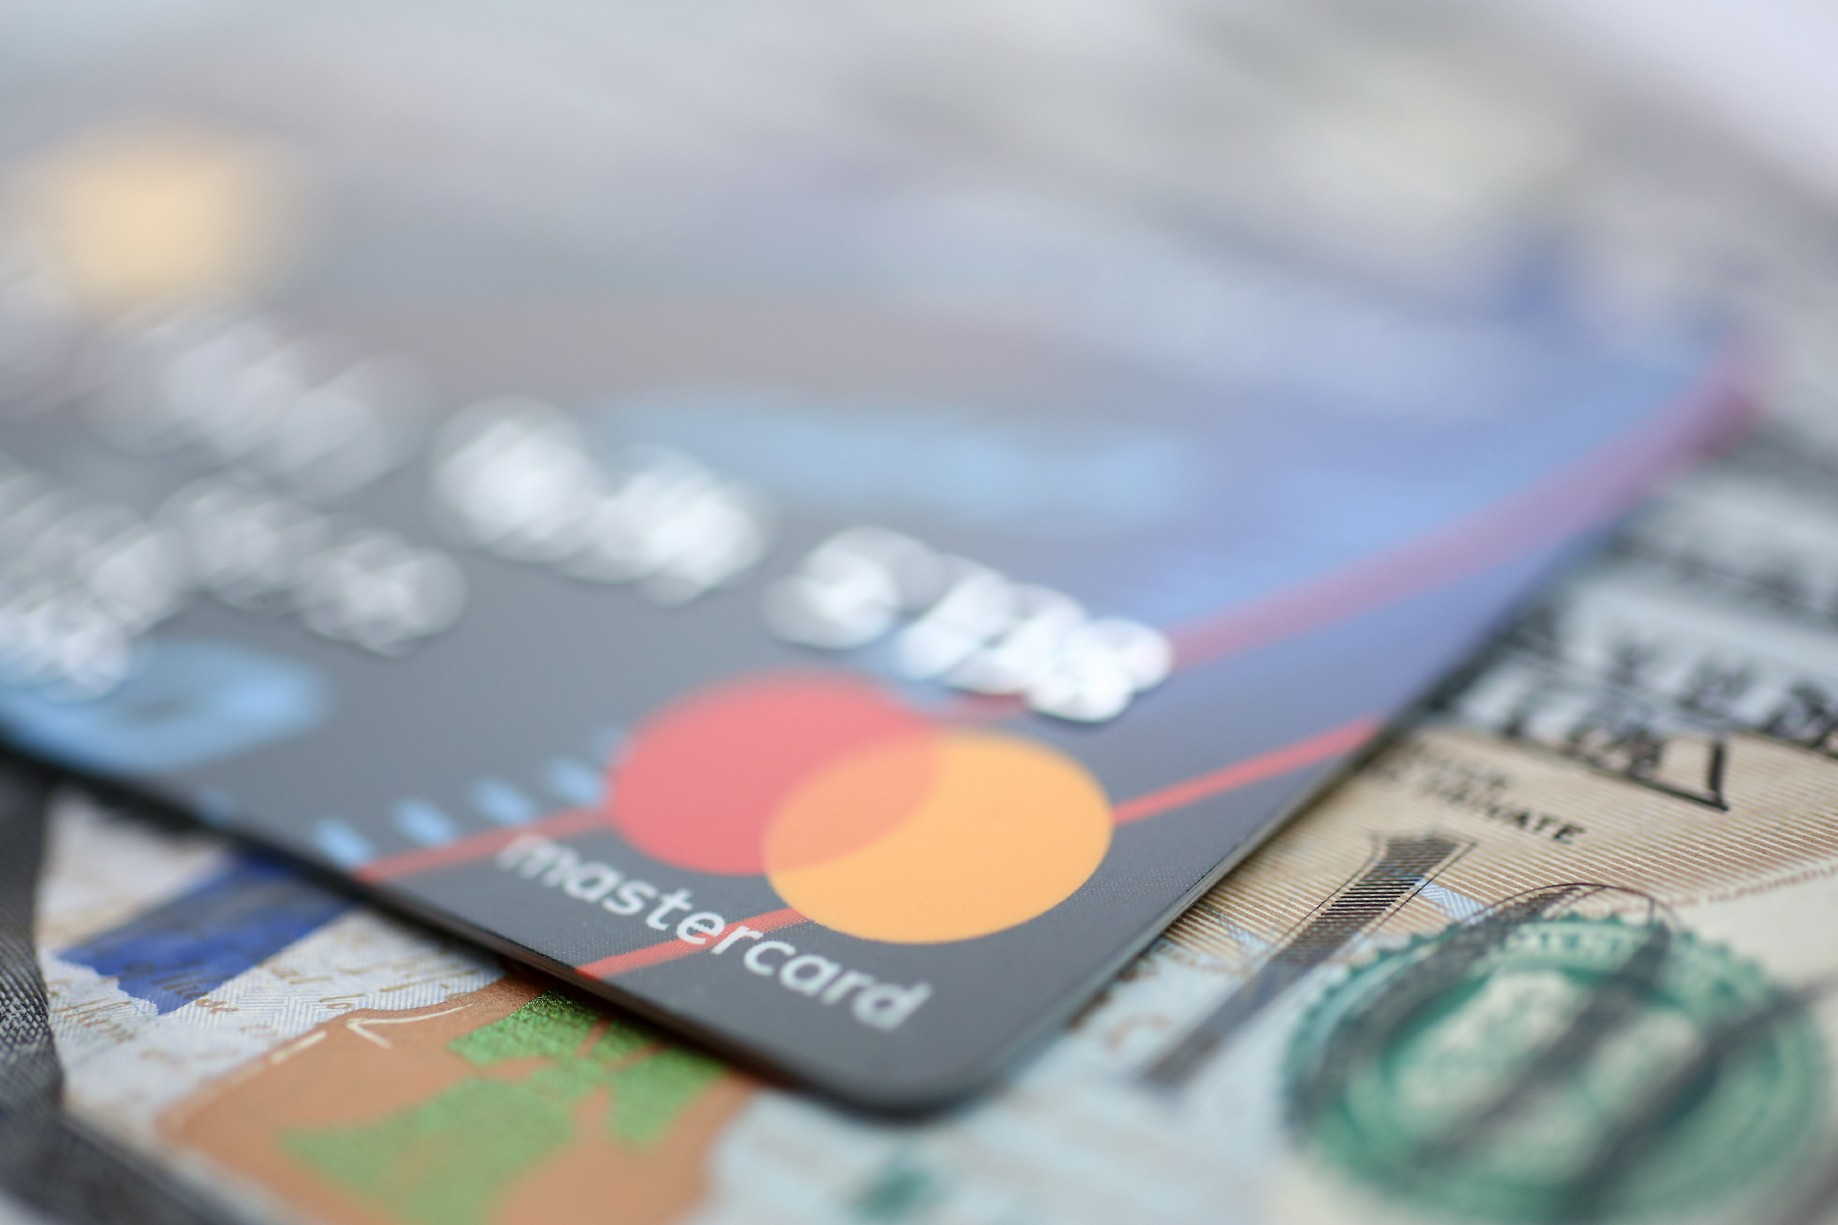 Walmart Partners With Affirm To Provide Credit Option To Customers >> Why Mastercard Bought A Point Of Sale Lending Platform